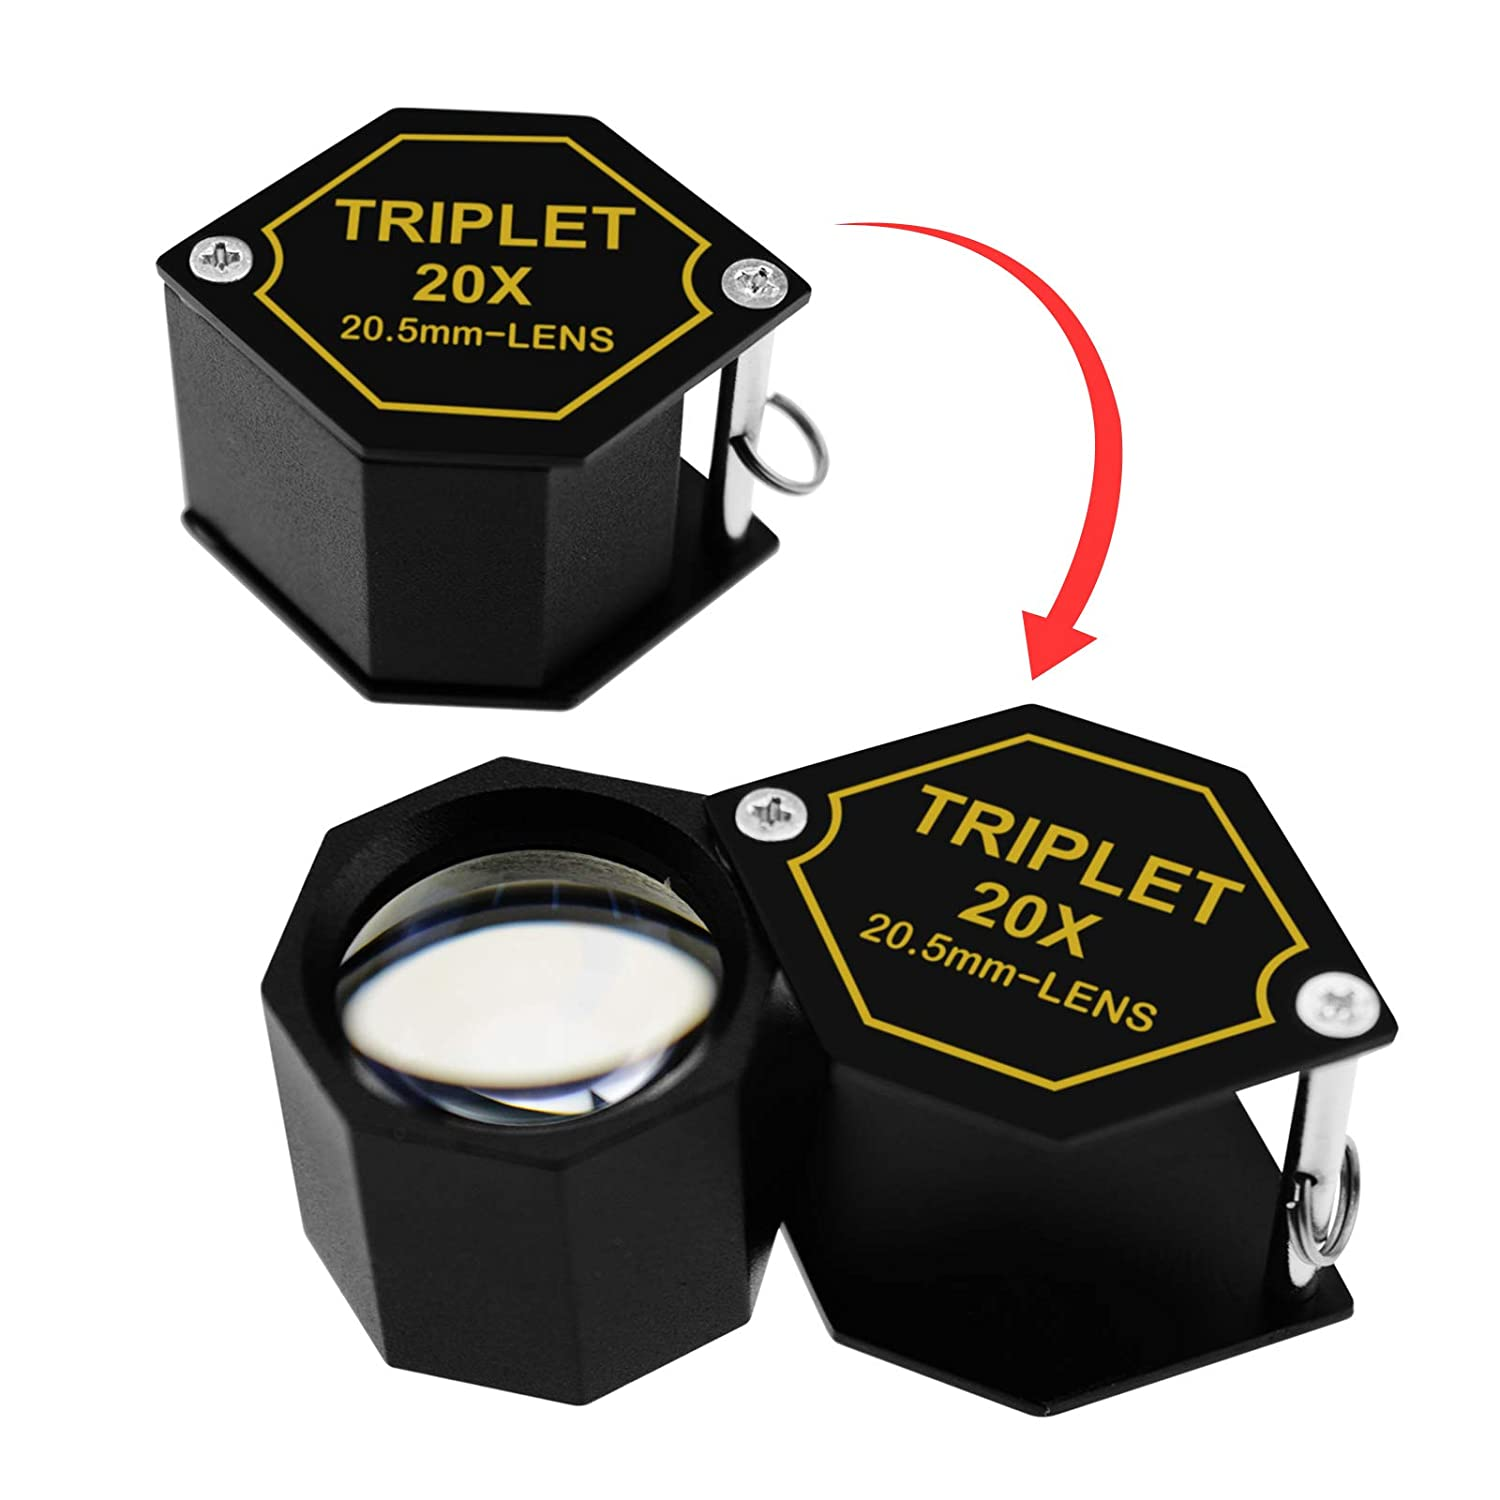 Gain Express 20x Magnifications 20.5mm Jeweler Gem Loupe Triplet Lens Magnifier Jewelry Optical Glass Great Professional Hobbyist Stamp /& Coin Mechanics Machinists